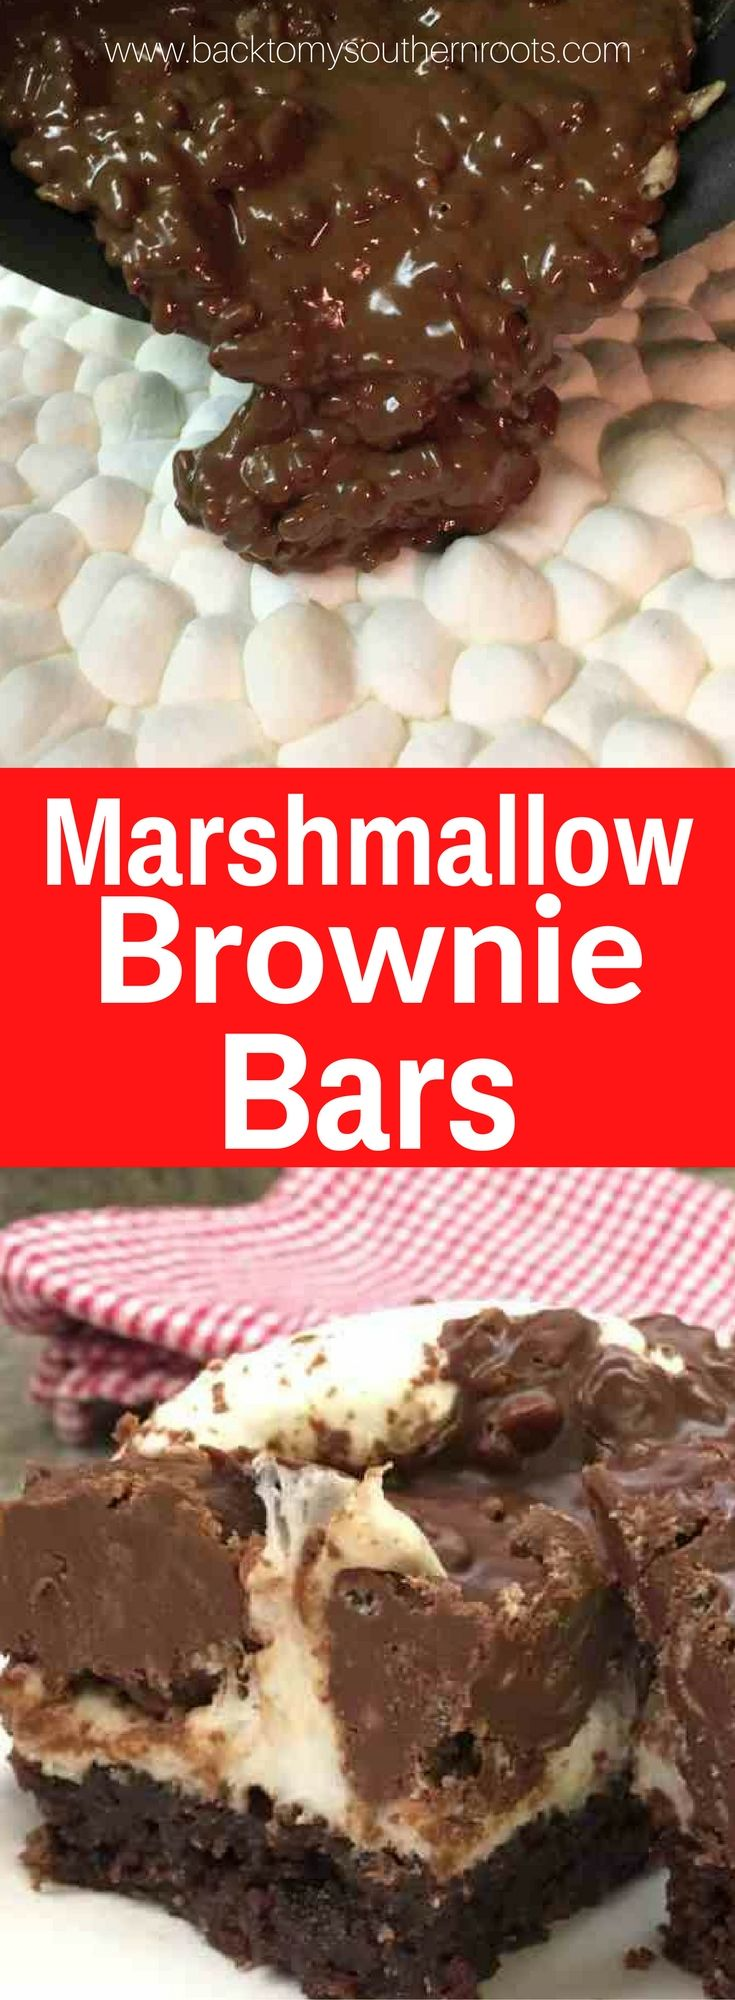 Marshmallow Brownie Bars are a delicious dessert. The combination of chocolate, marshmallow, crispy rice cereal, and brownies are perfect for parties. Marshmallow Brownie Bars are a great recipe for any occasion.